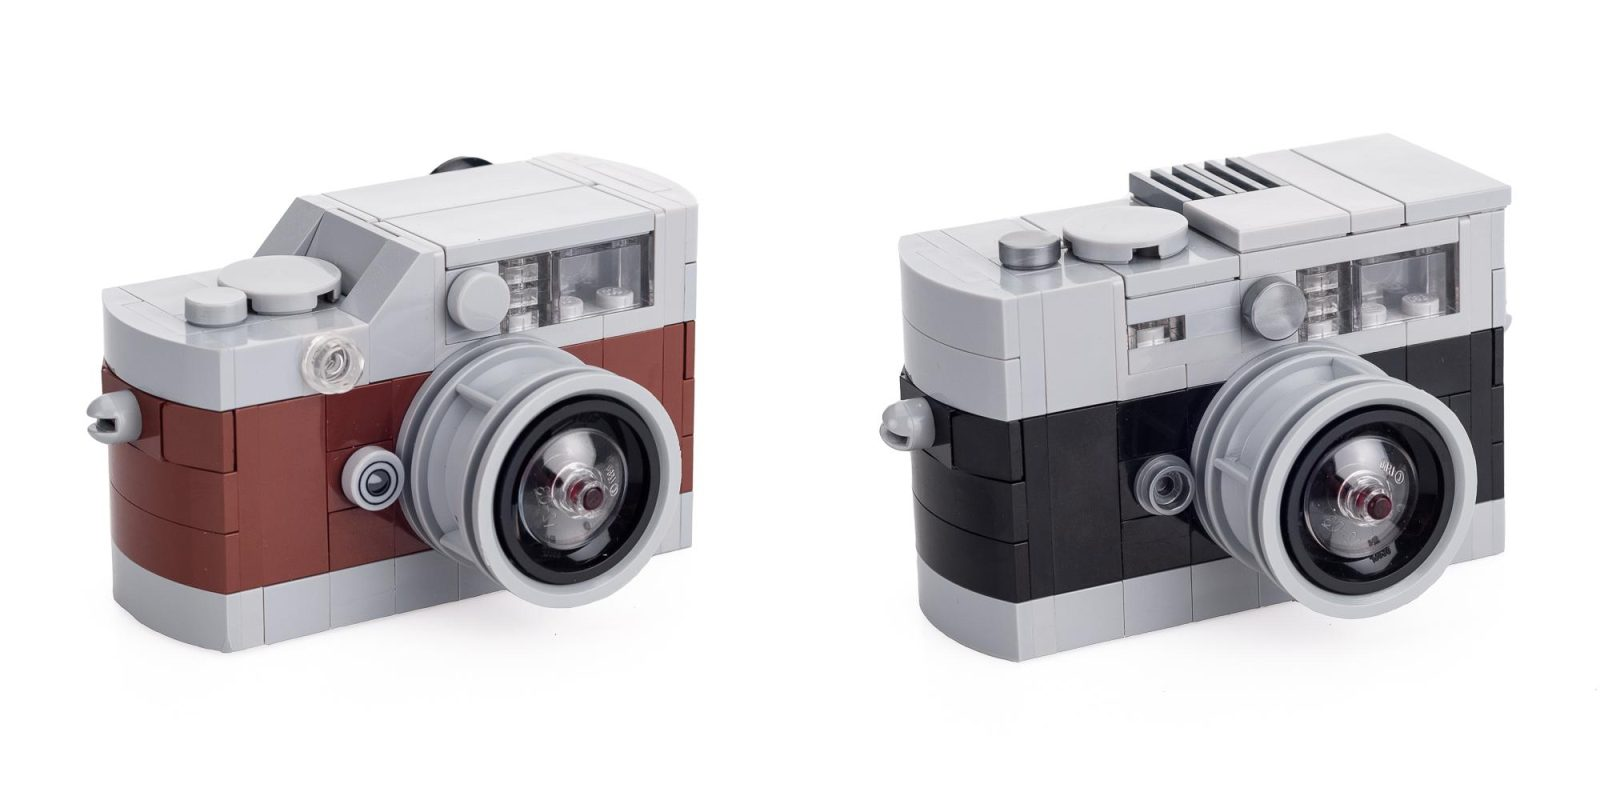 This LEGO Leica M Camera can be yours for $45 - 9to5Toys